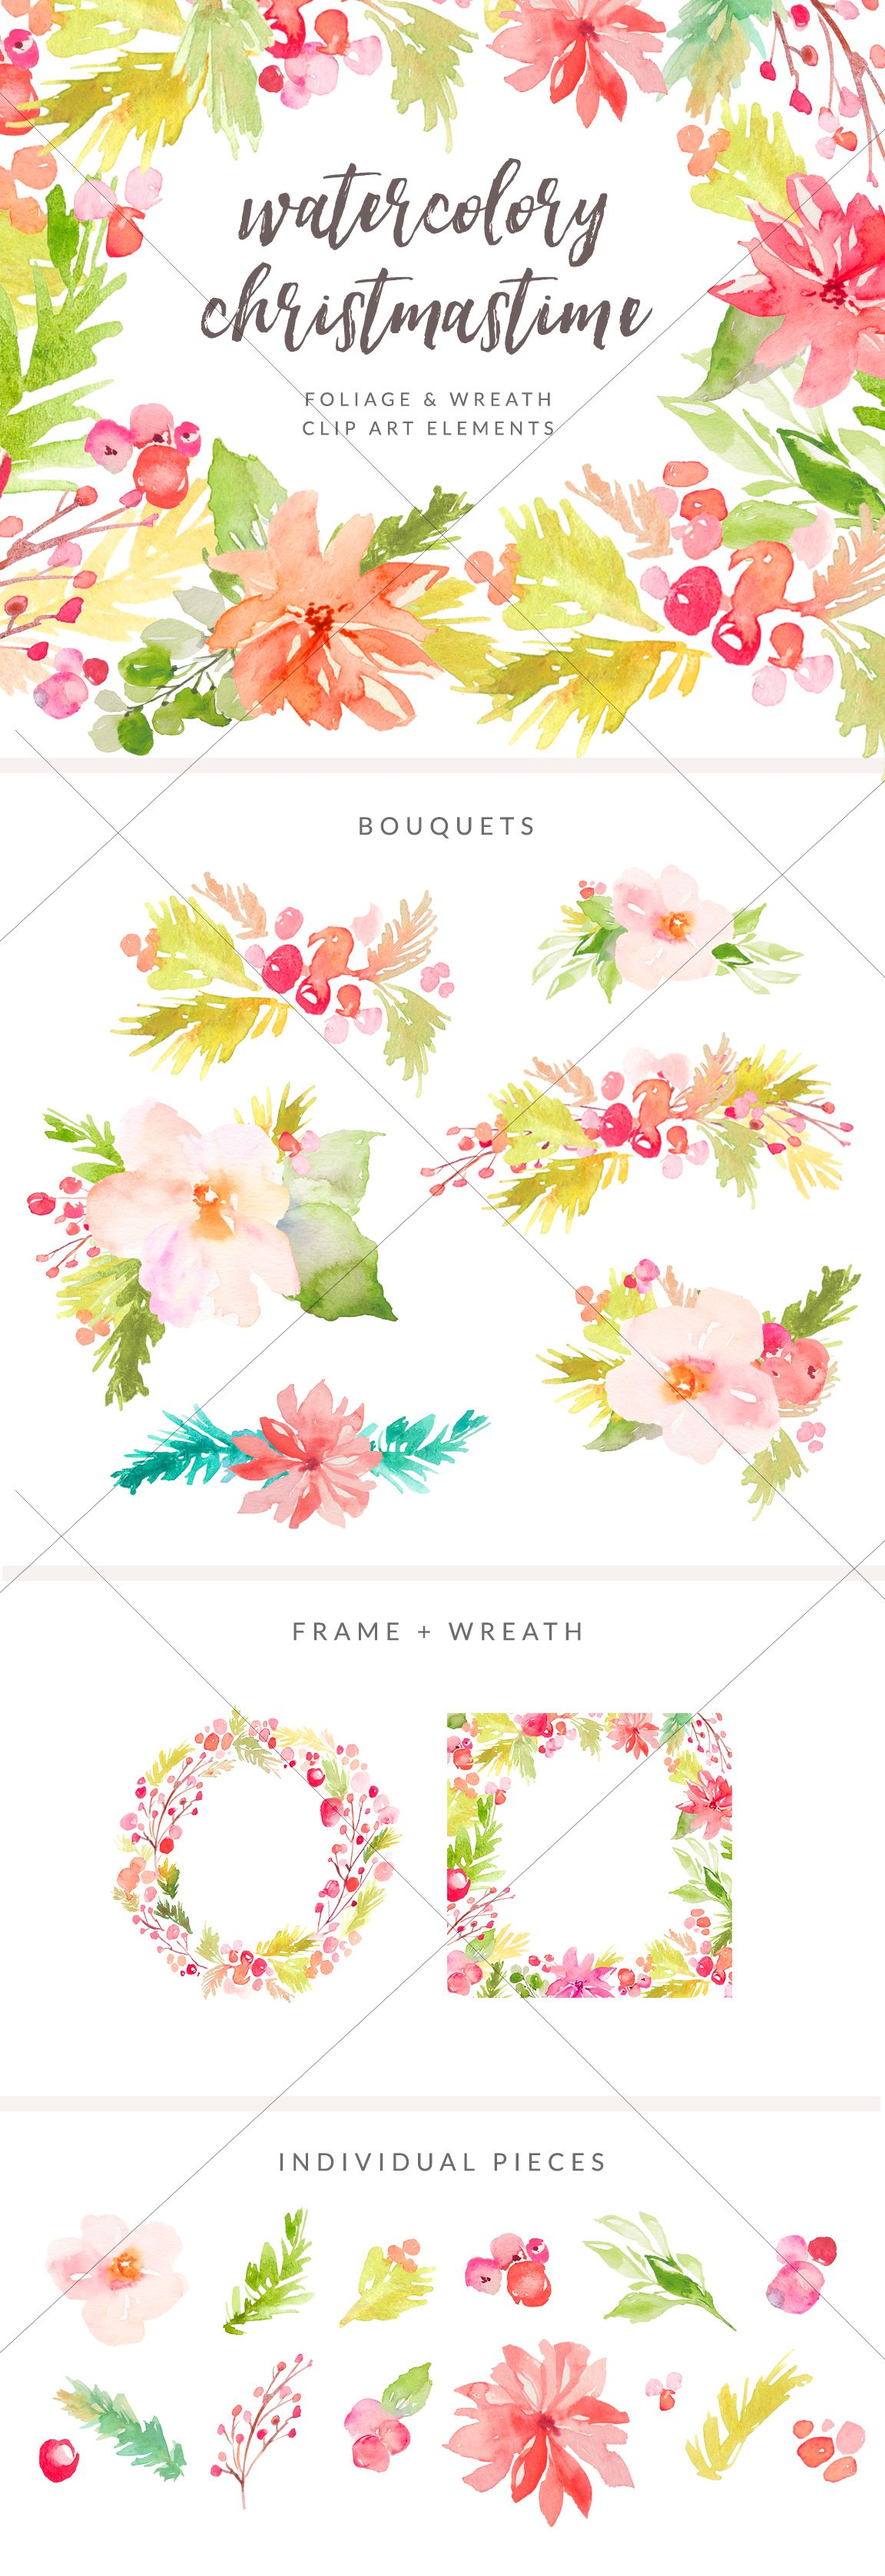 Cute Watercolor Flower Bouquets with Winter Berries. This Winter Foliage Clip Art is Perfect for Your Projects! | angiemakes.com